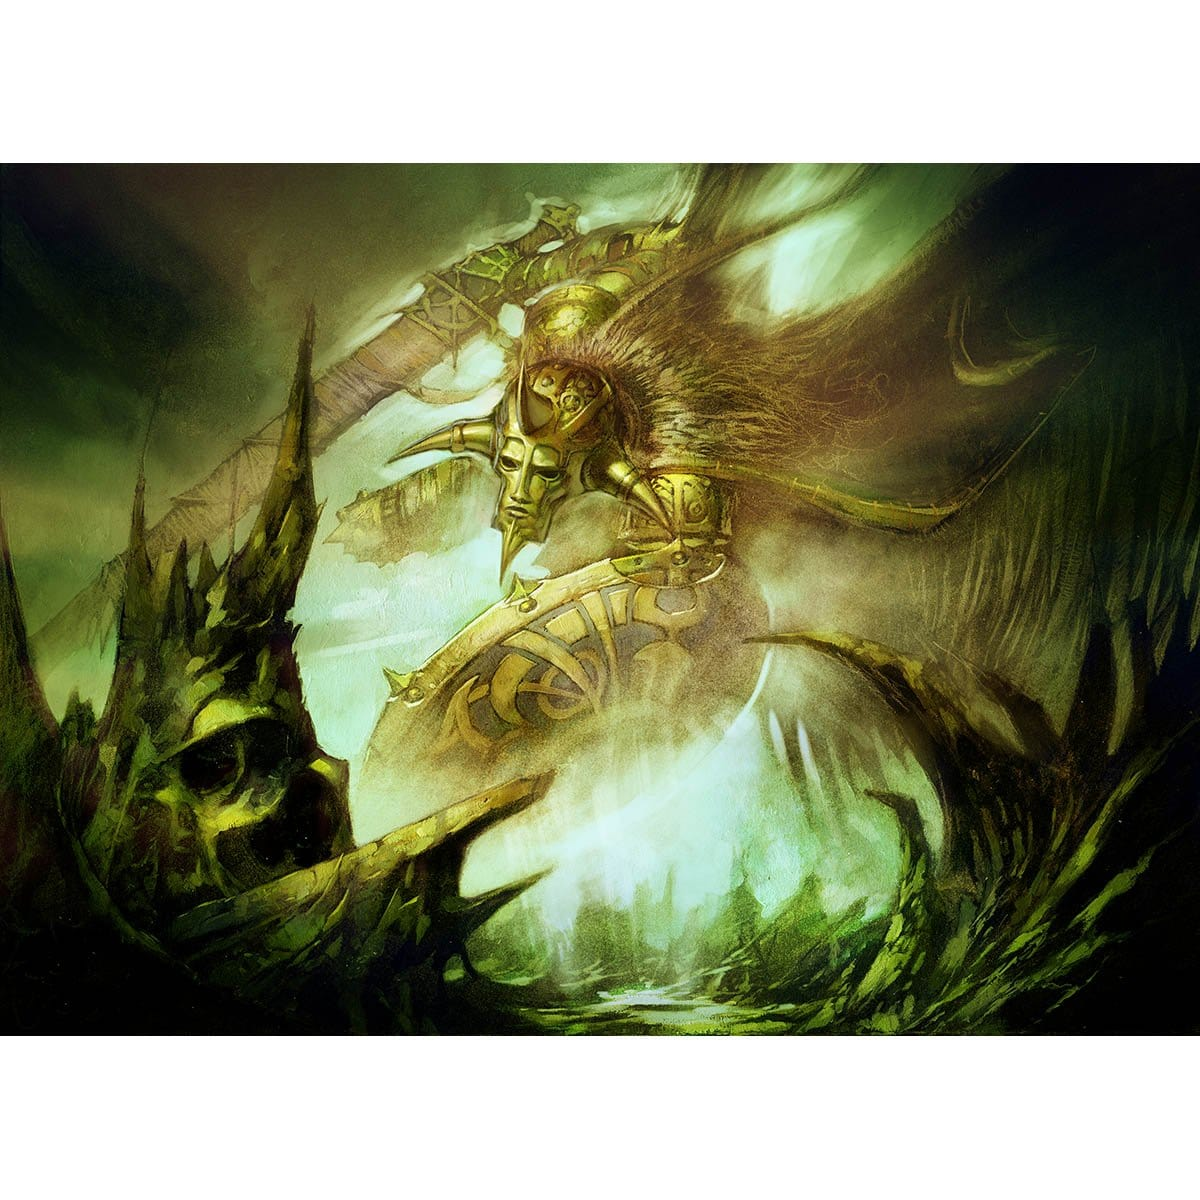 Celestial Crusader Print - Print - Original Magic Art - Accessories for Magic the Gathering and other card games